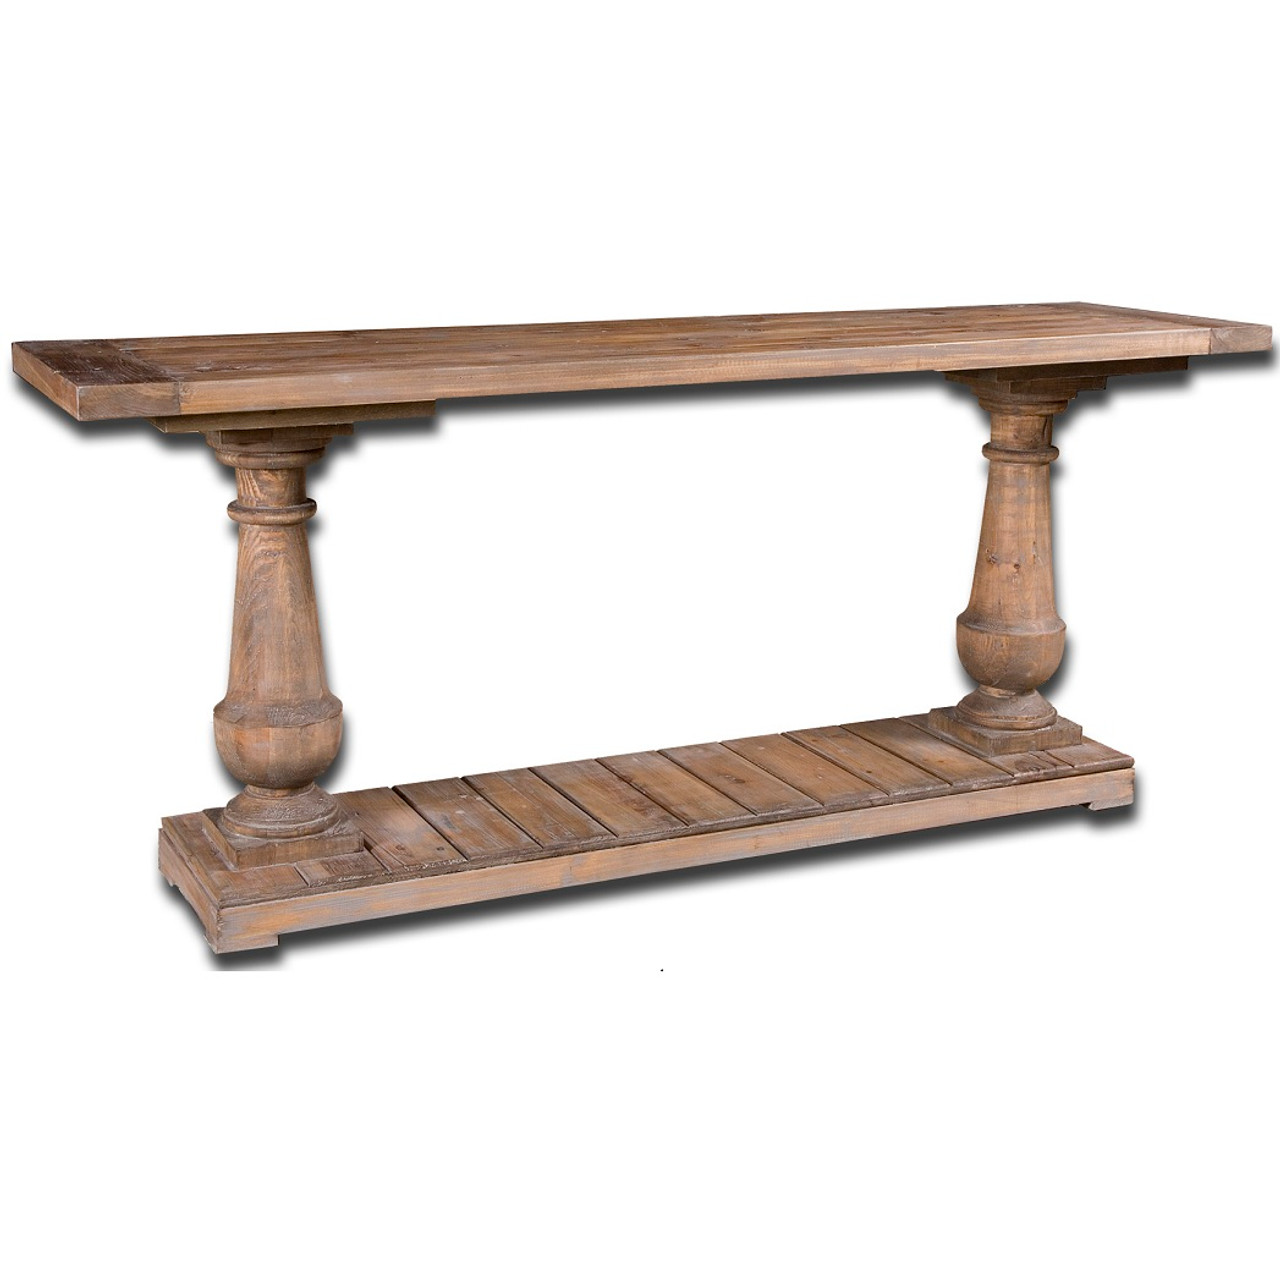 Salvaged Solid Wood Rustic Console Table 71